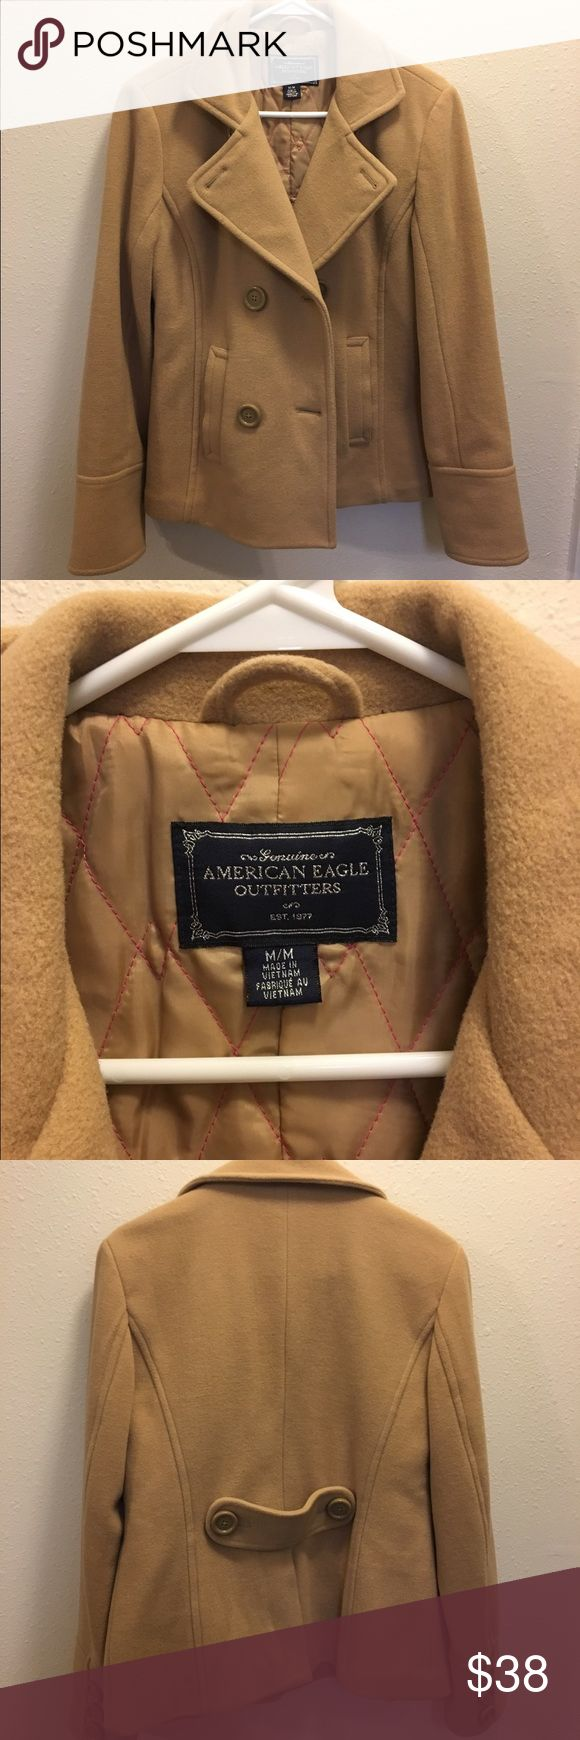 American Eagle peacoat American Eagle tan peacoat, sized medium. Great condition!! No signs of wear. American Eagle Outfitters Jackets & Coats Pea Coats